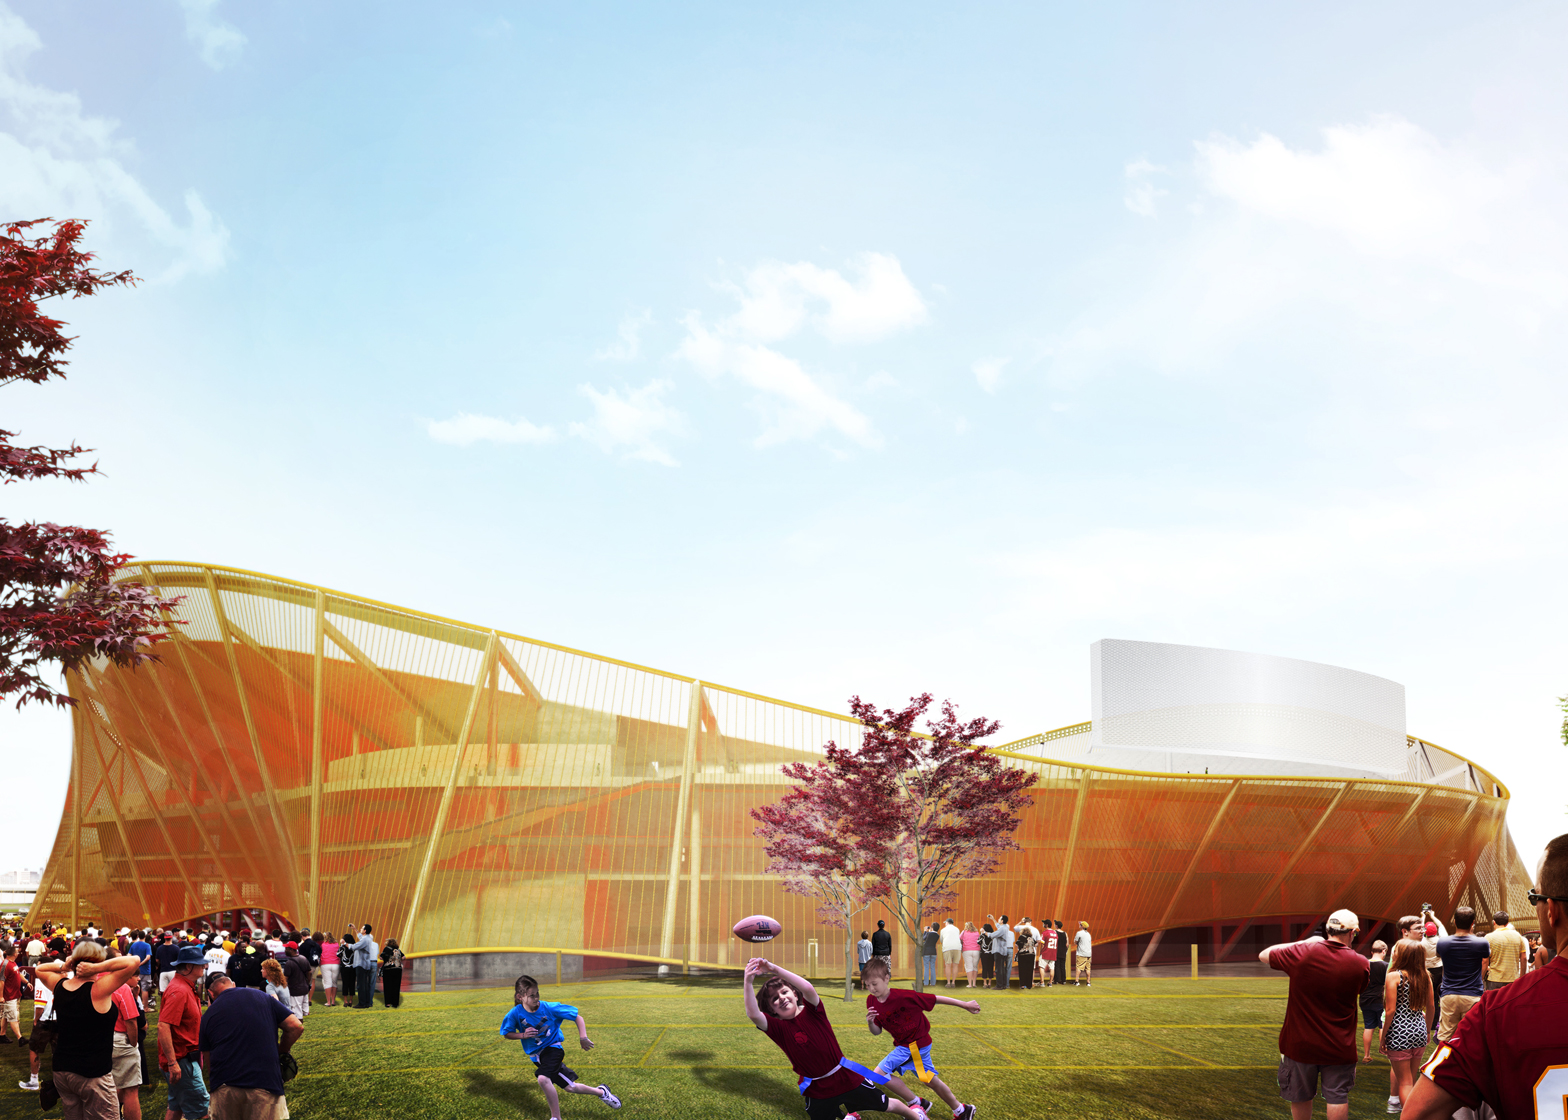 redskin-stadium-washington-big-usa_dezeen_1568_5-new